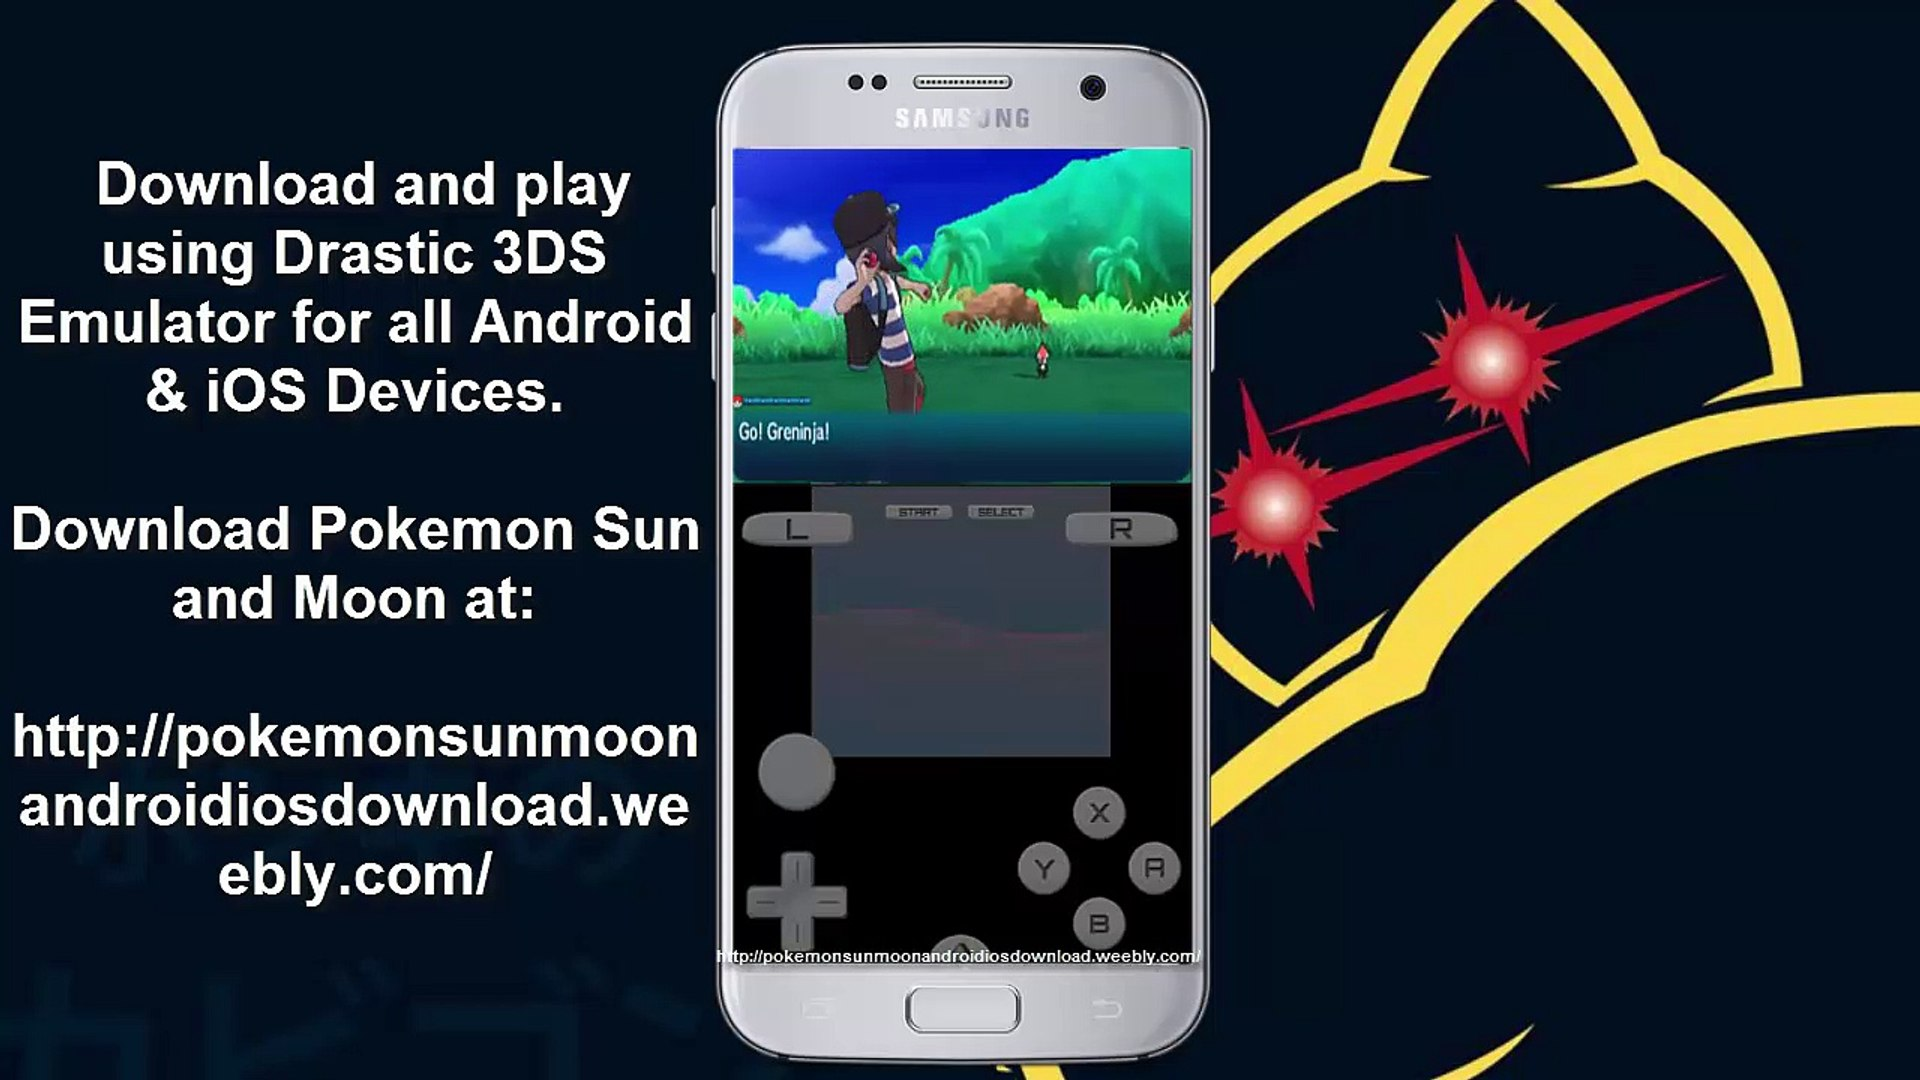 How to play Pokémon Sun in Android - Working Drastic 3DS Emulator